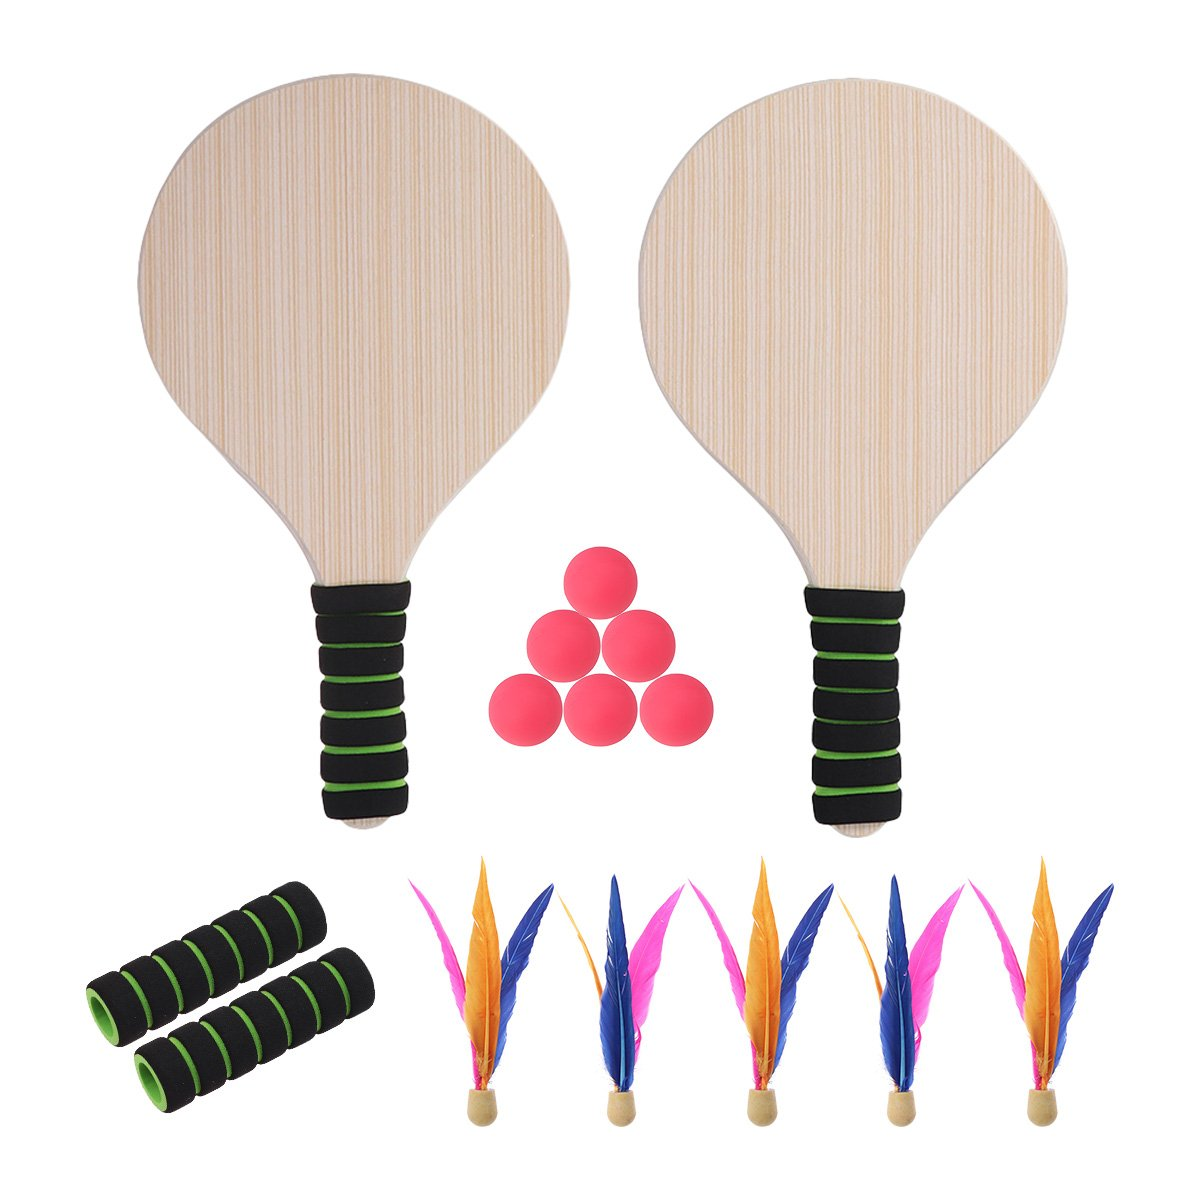 VORCOOL Paddle Ball Racket Game Set Beach Paddle Ball Set Beach Tennis Beach Ball Racket for Kid Adult Indoor Outdoor Game Toys